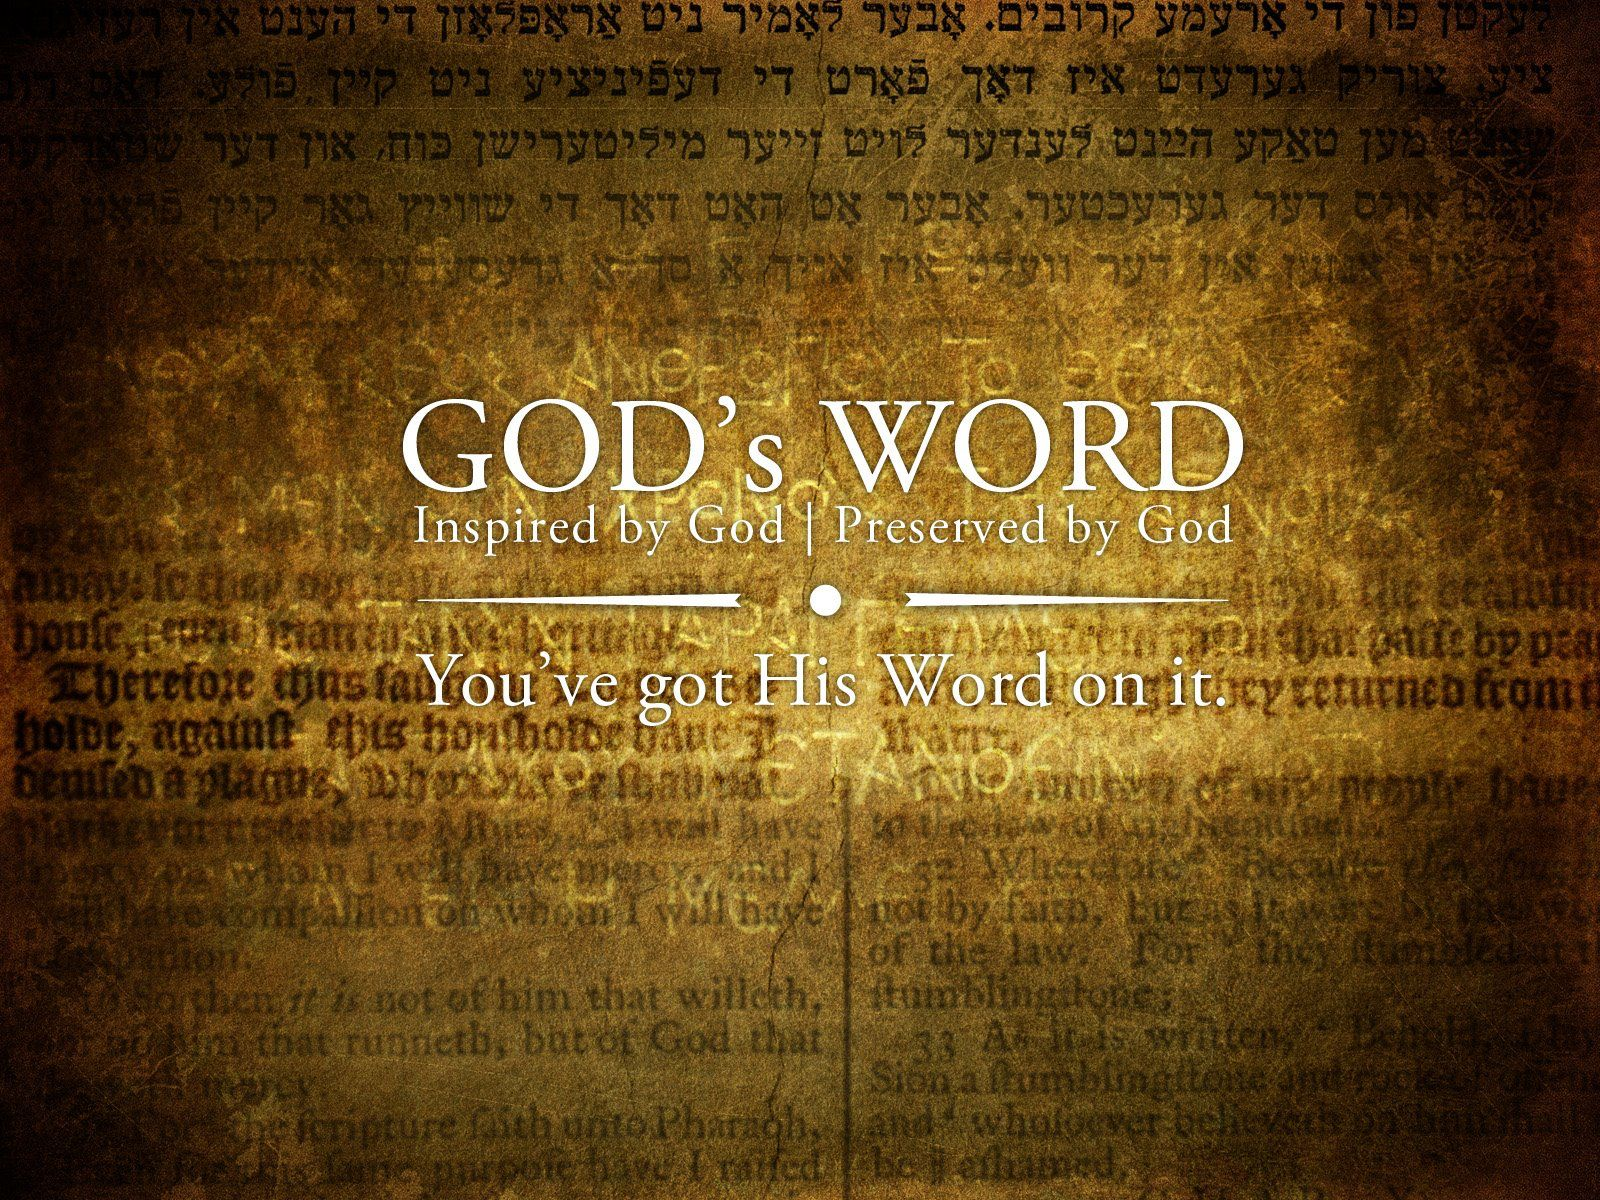 God's Word (Inspired by God | Preserved by God) You've got His Word on it.  | Christian wallpaper, Free christian wallpaper, Words